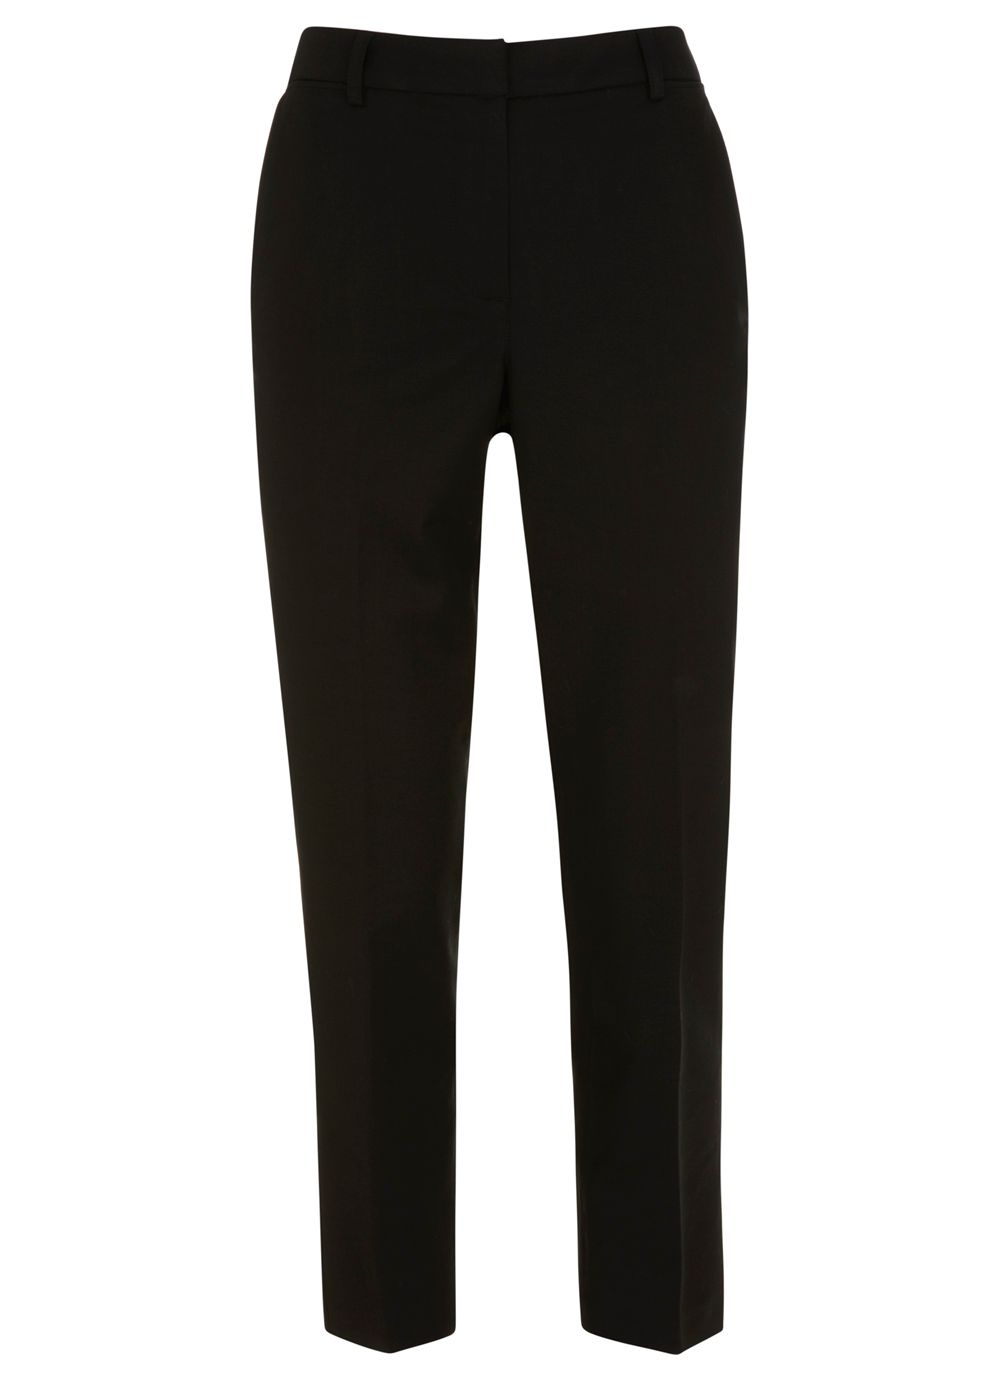 Black stretch capri